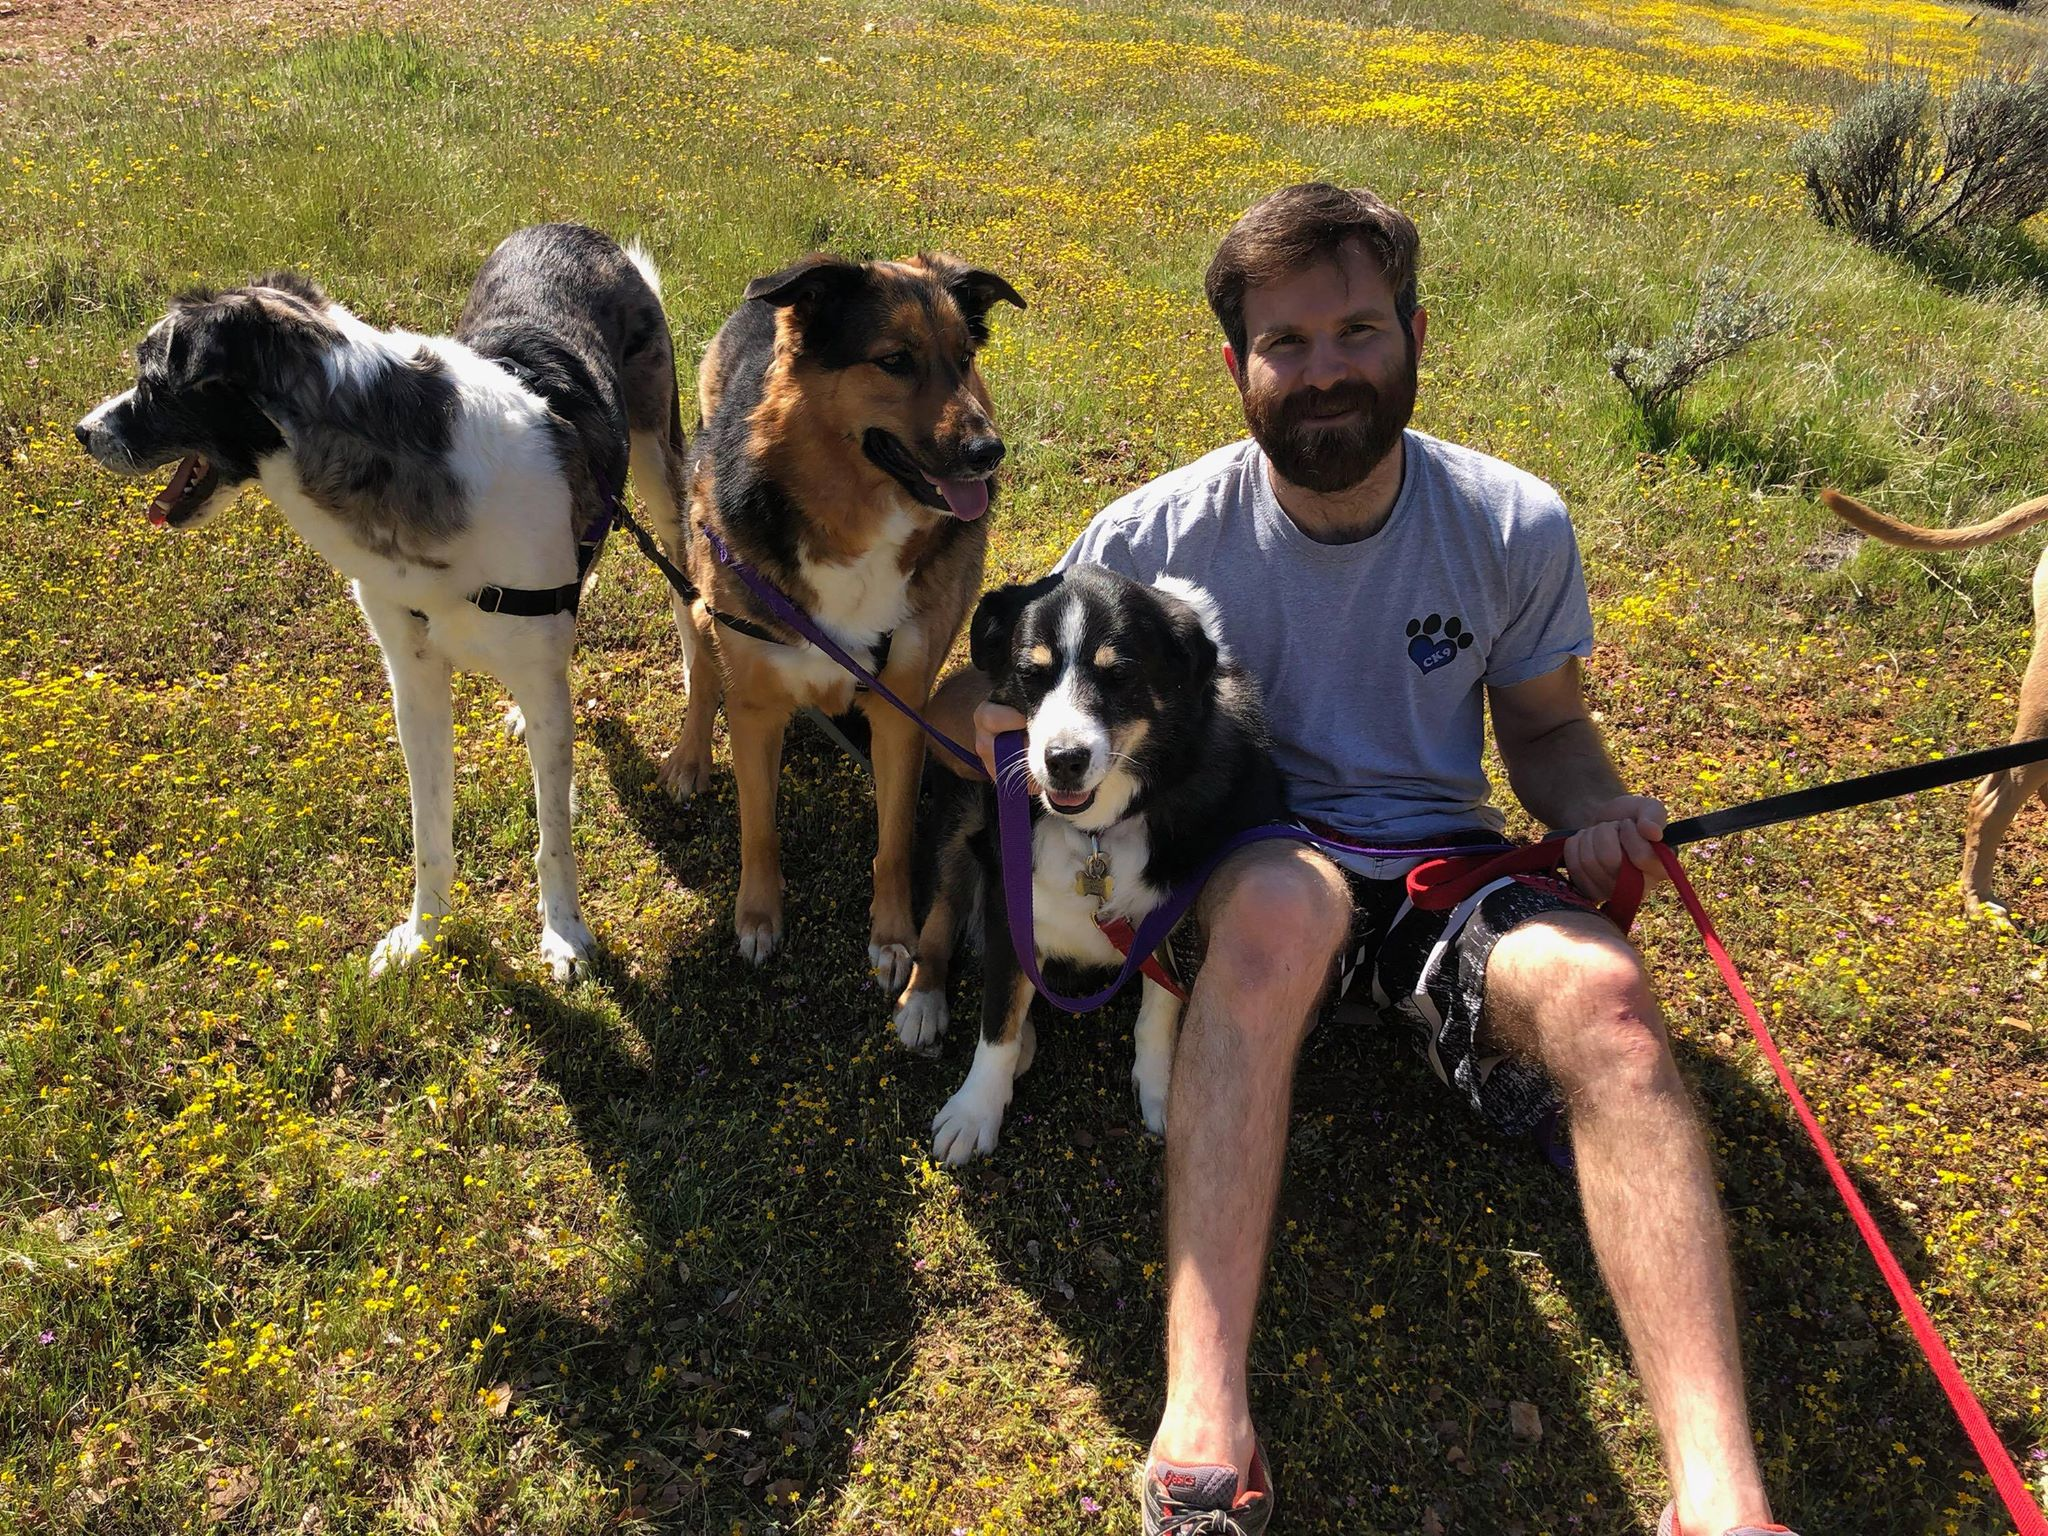 kyler emery - Kyler will be running the Half Marathon. To donate to Kyler's campaign please visit:fundly.com/kyler-emery-sos-dog-rescue-marathon-2020-runningforrescues